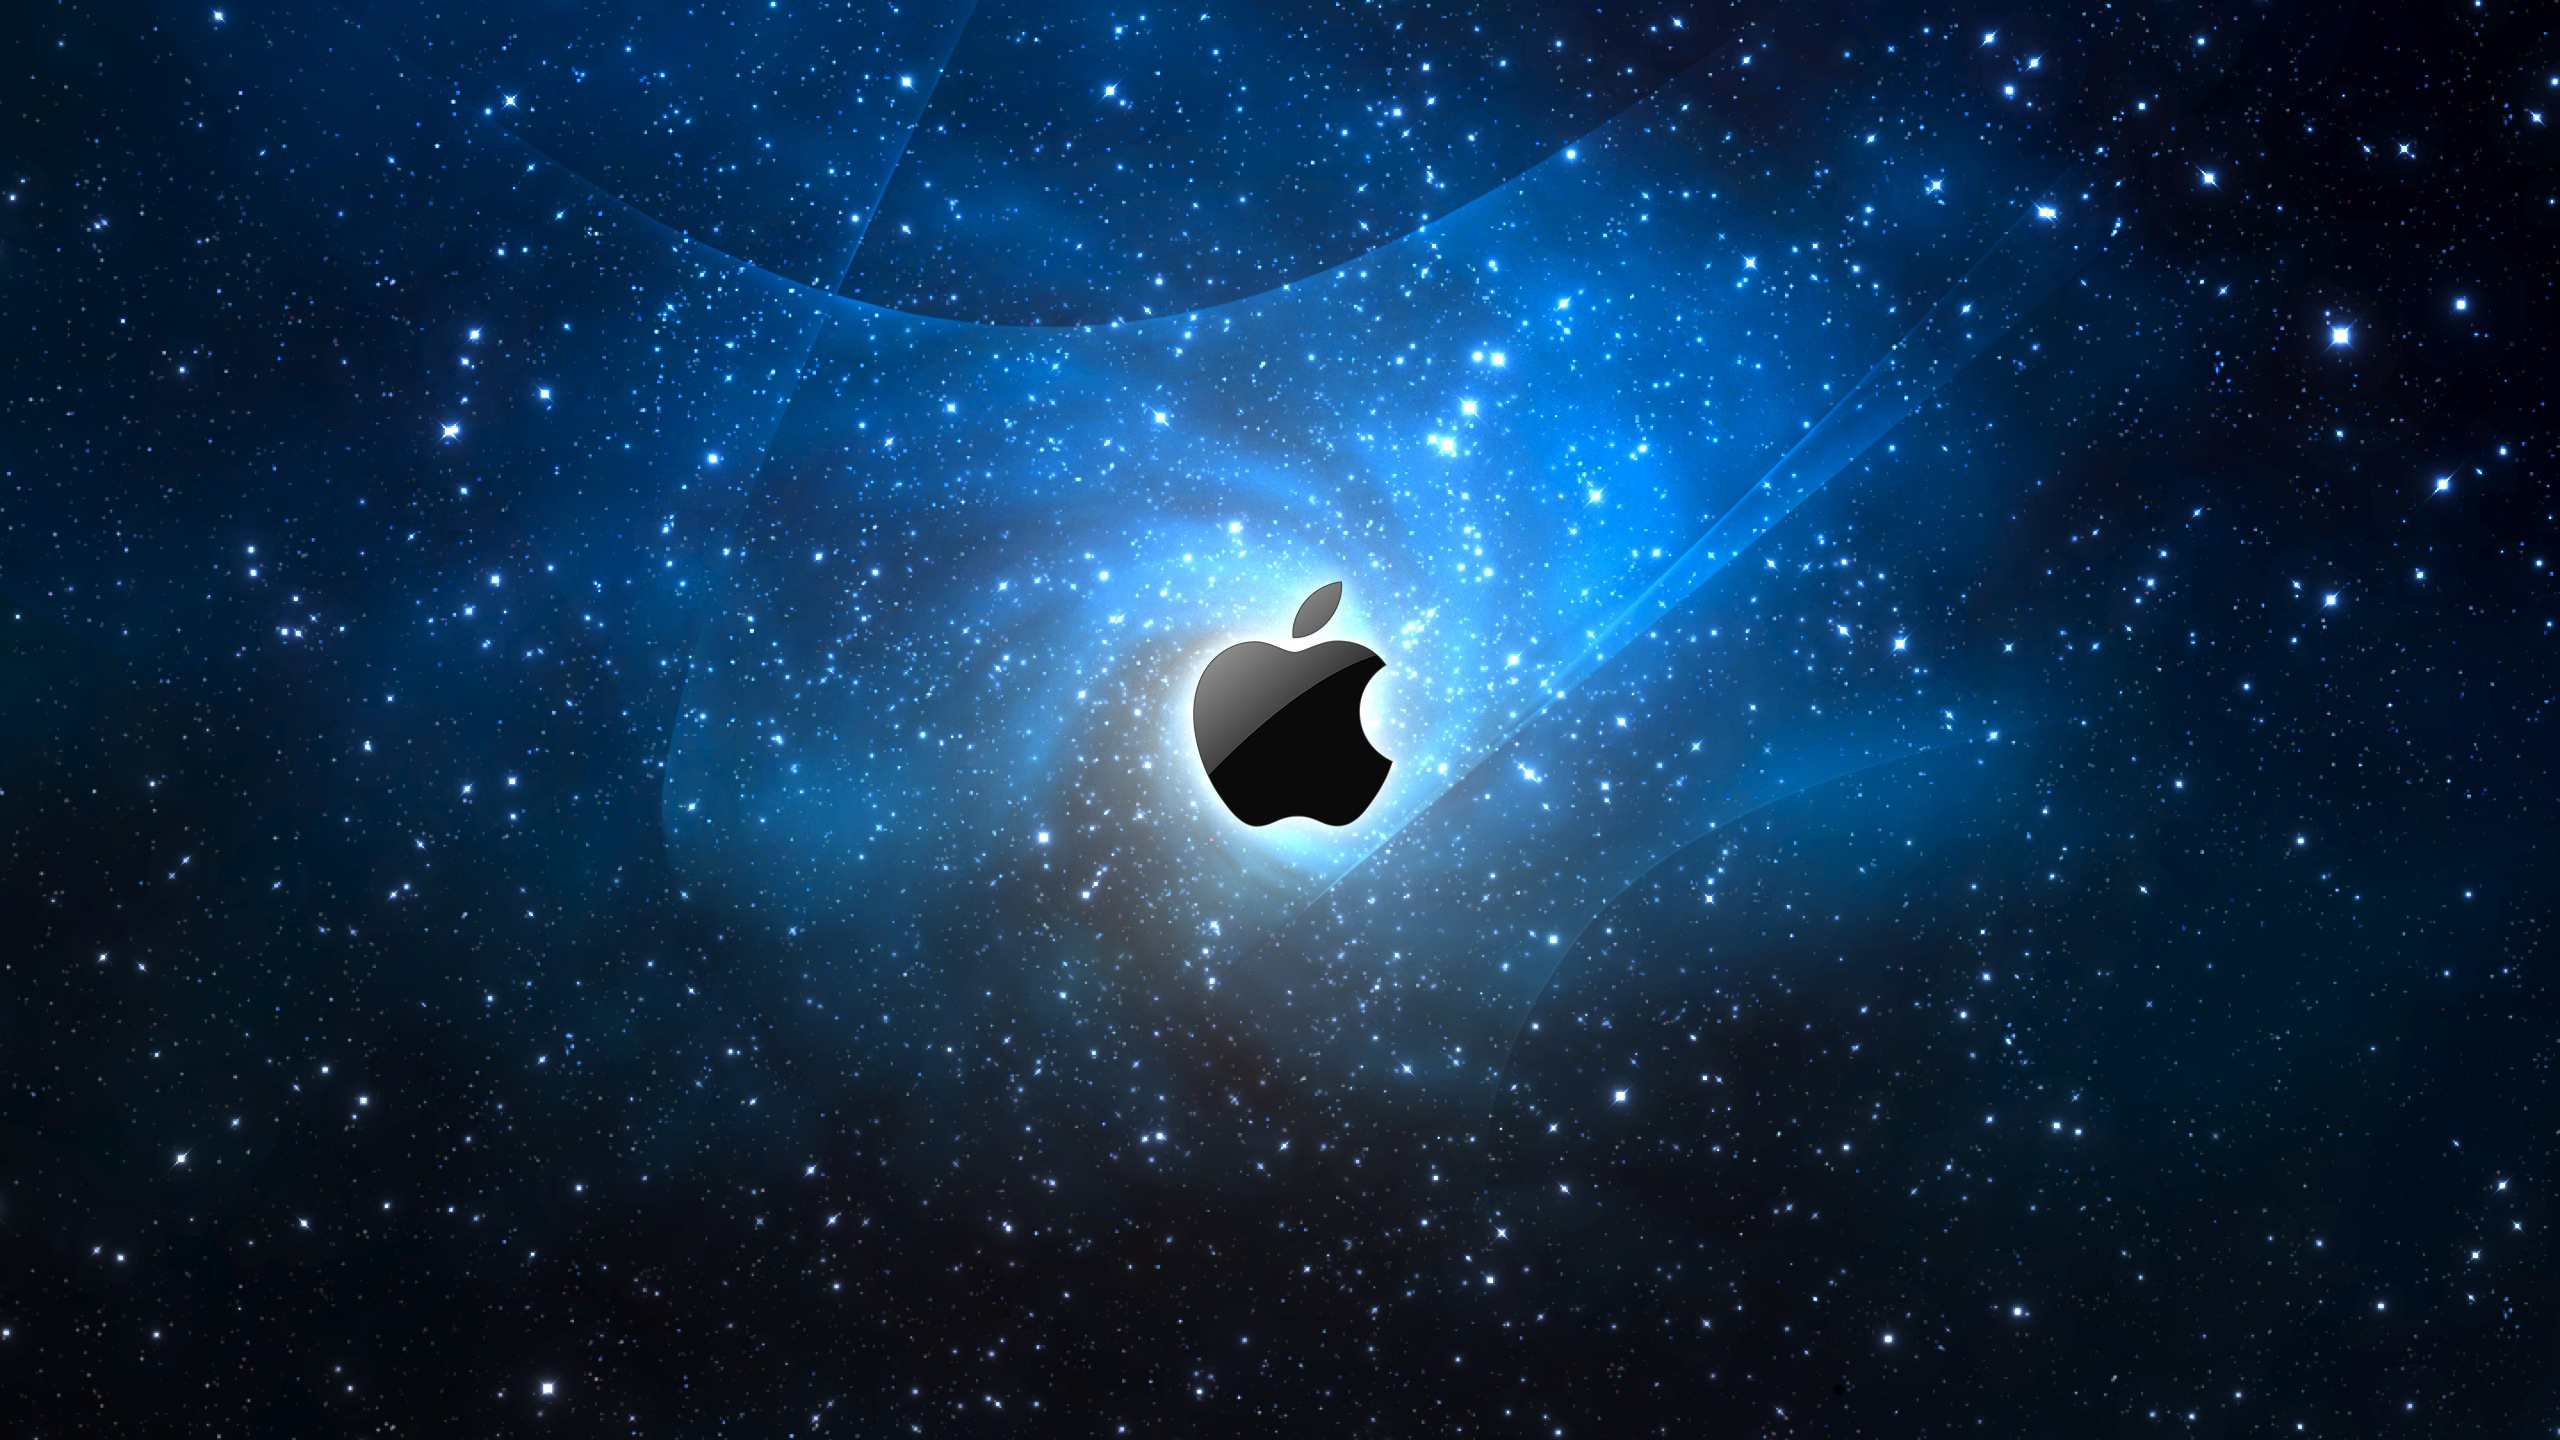 Imac Desktop Wallpaper Backgrounds Download Wallpaperiz